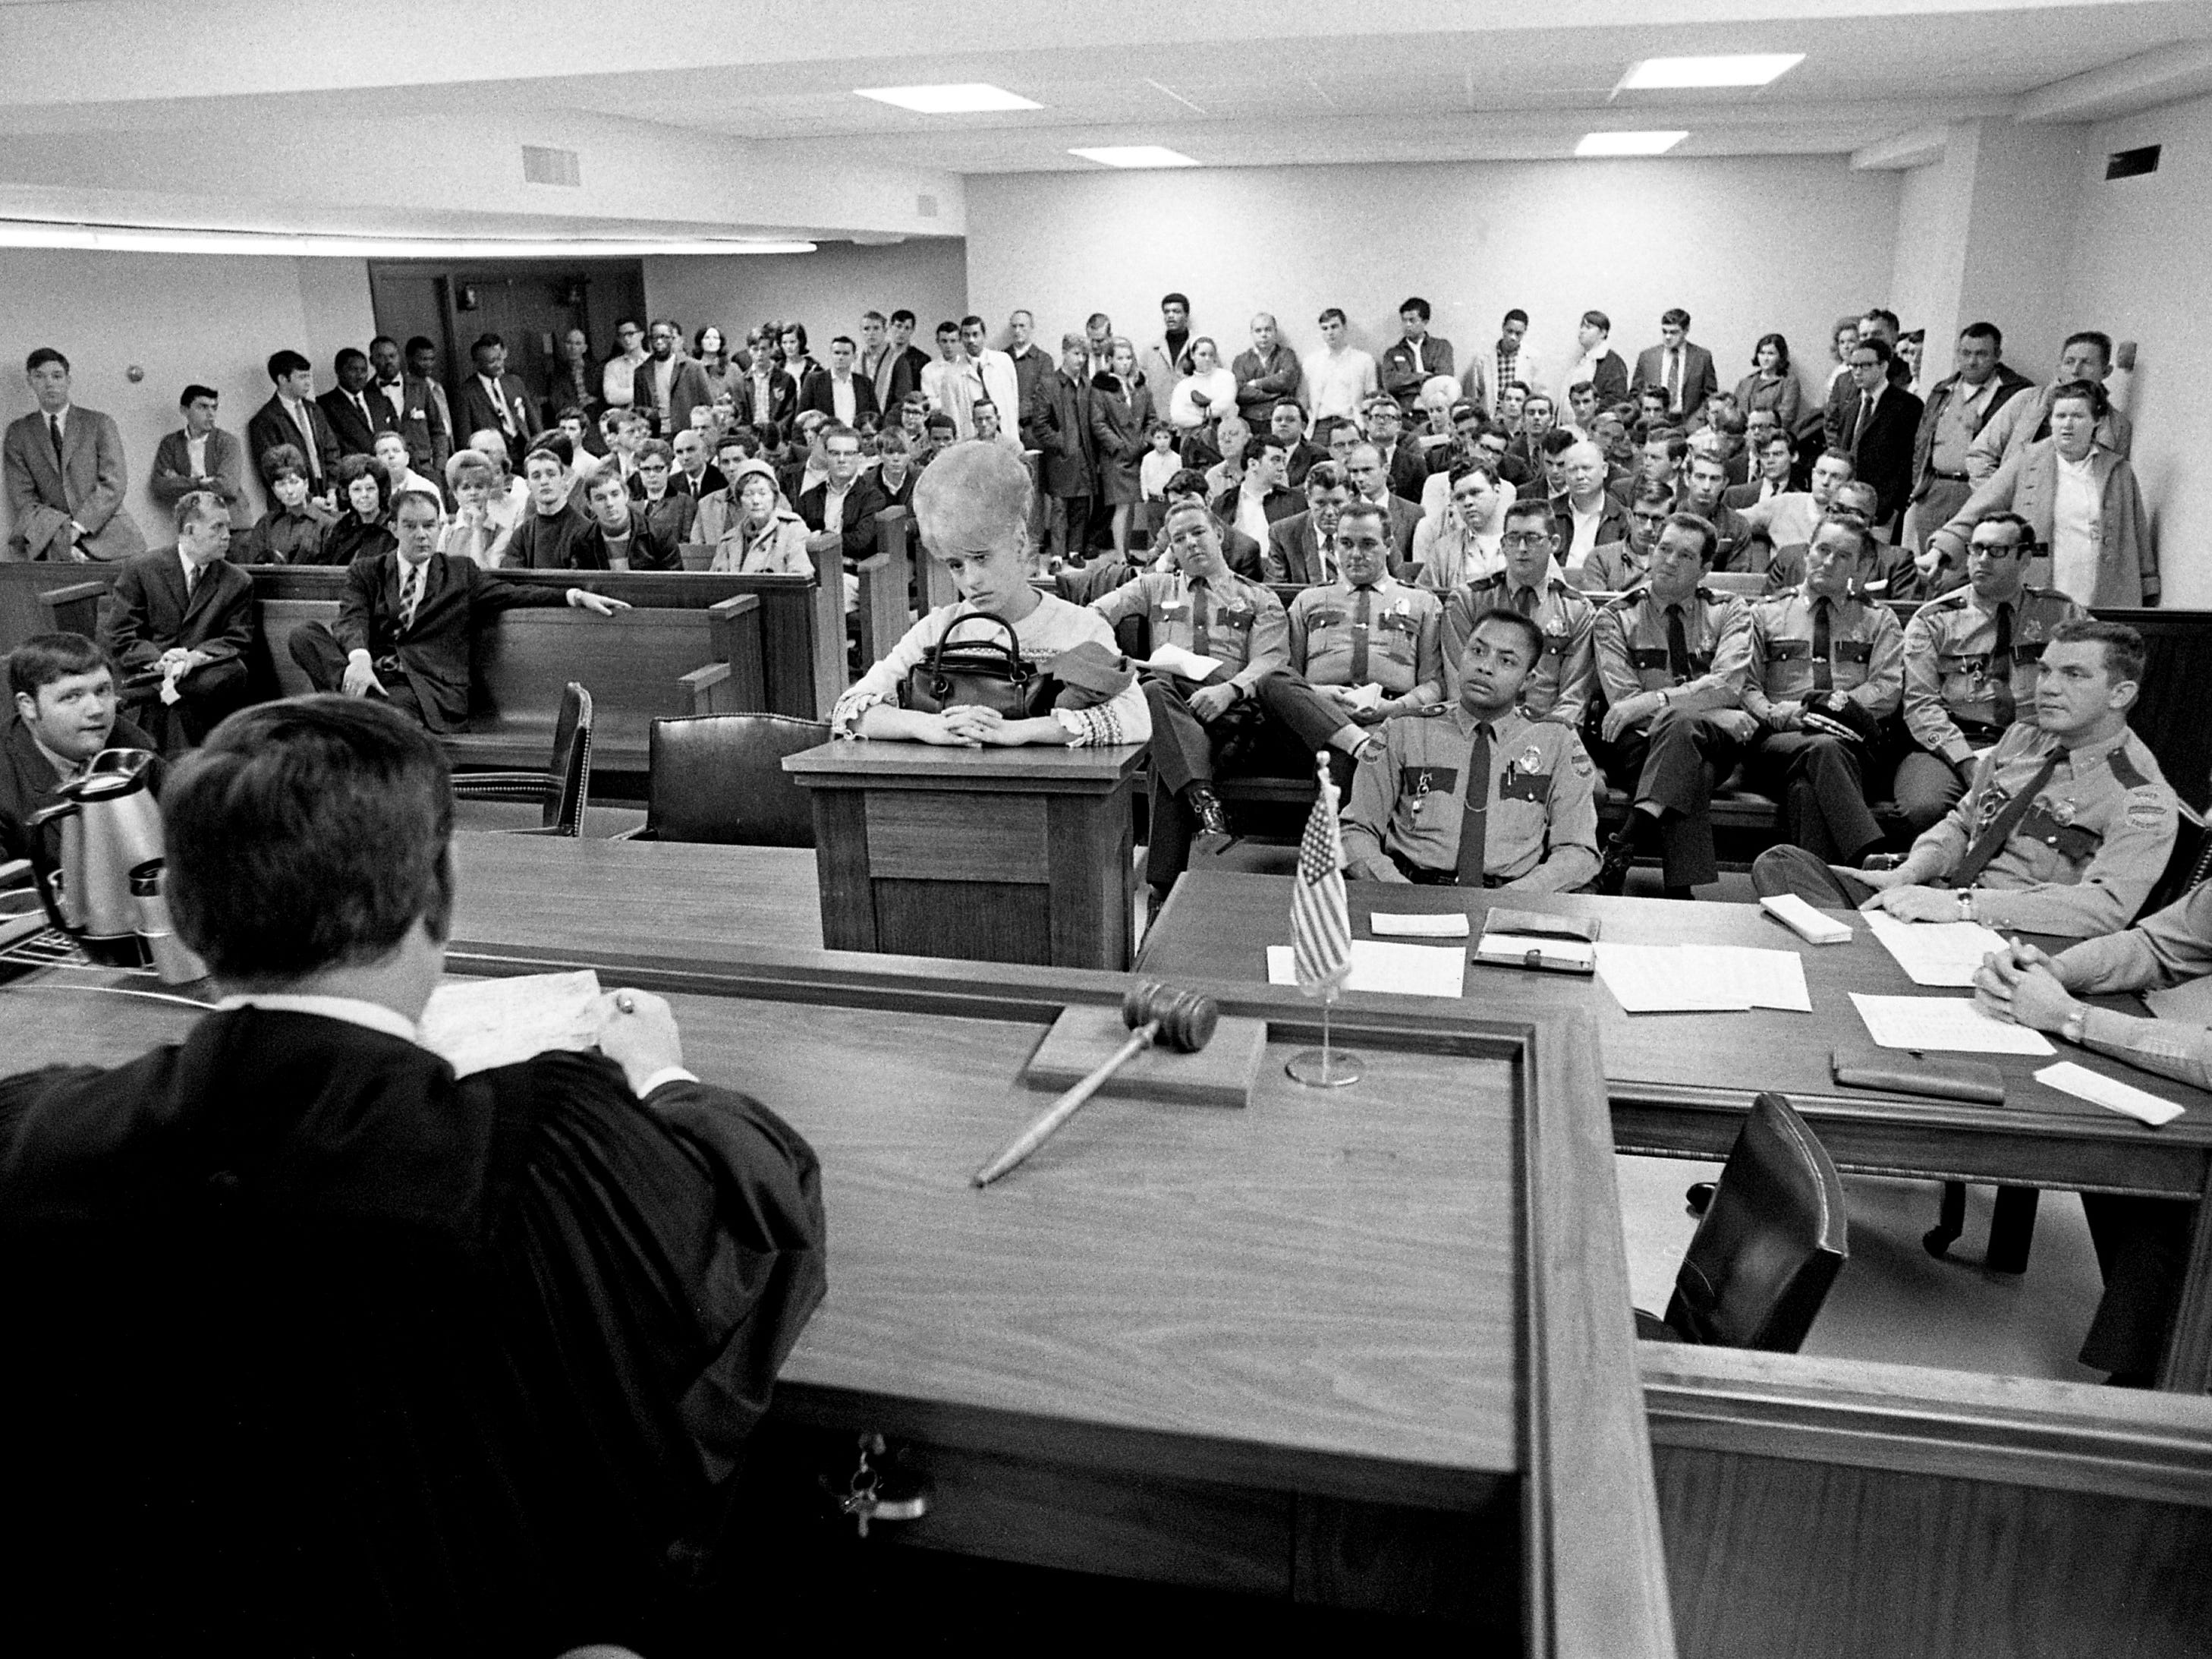 Dozens of people waiting for their traffic cases to be heard stand in the rear of the Metro General Sessions courtroom of the Davidson County Courthouse on Jan. 22, 1969. All available seats were taken up by officers, attorneys and defendants. The crowded courtroom is a daily occurrence, and General Sessions Judge Joe Loser says the facility should be expanded to provide additional space.